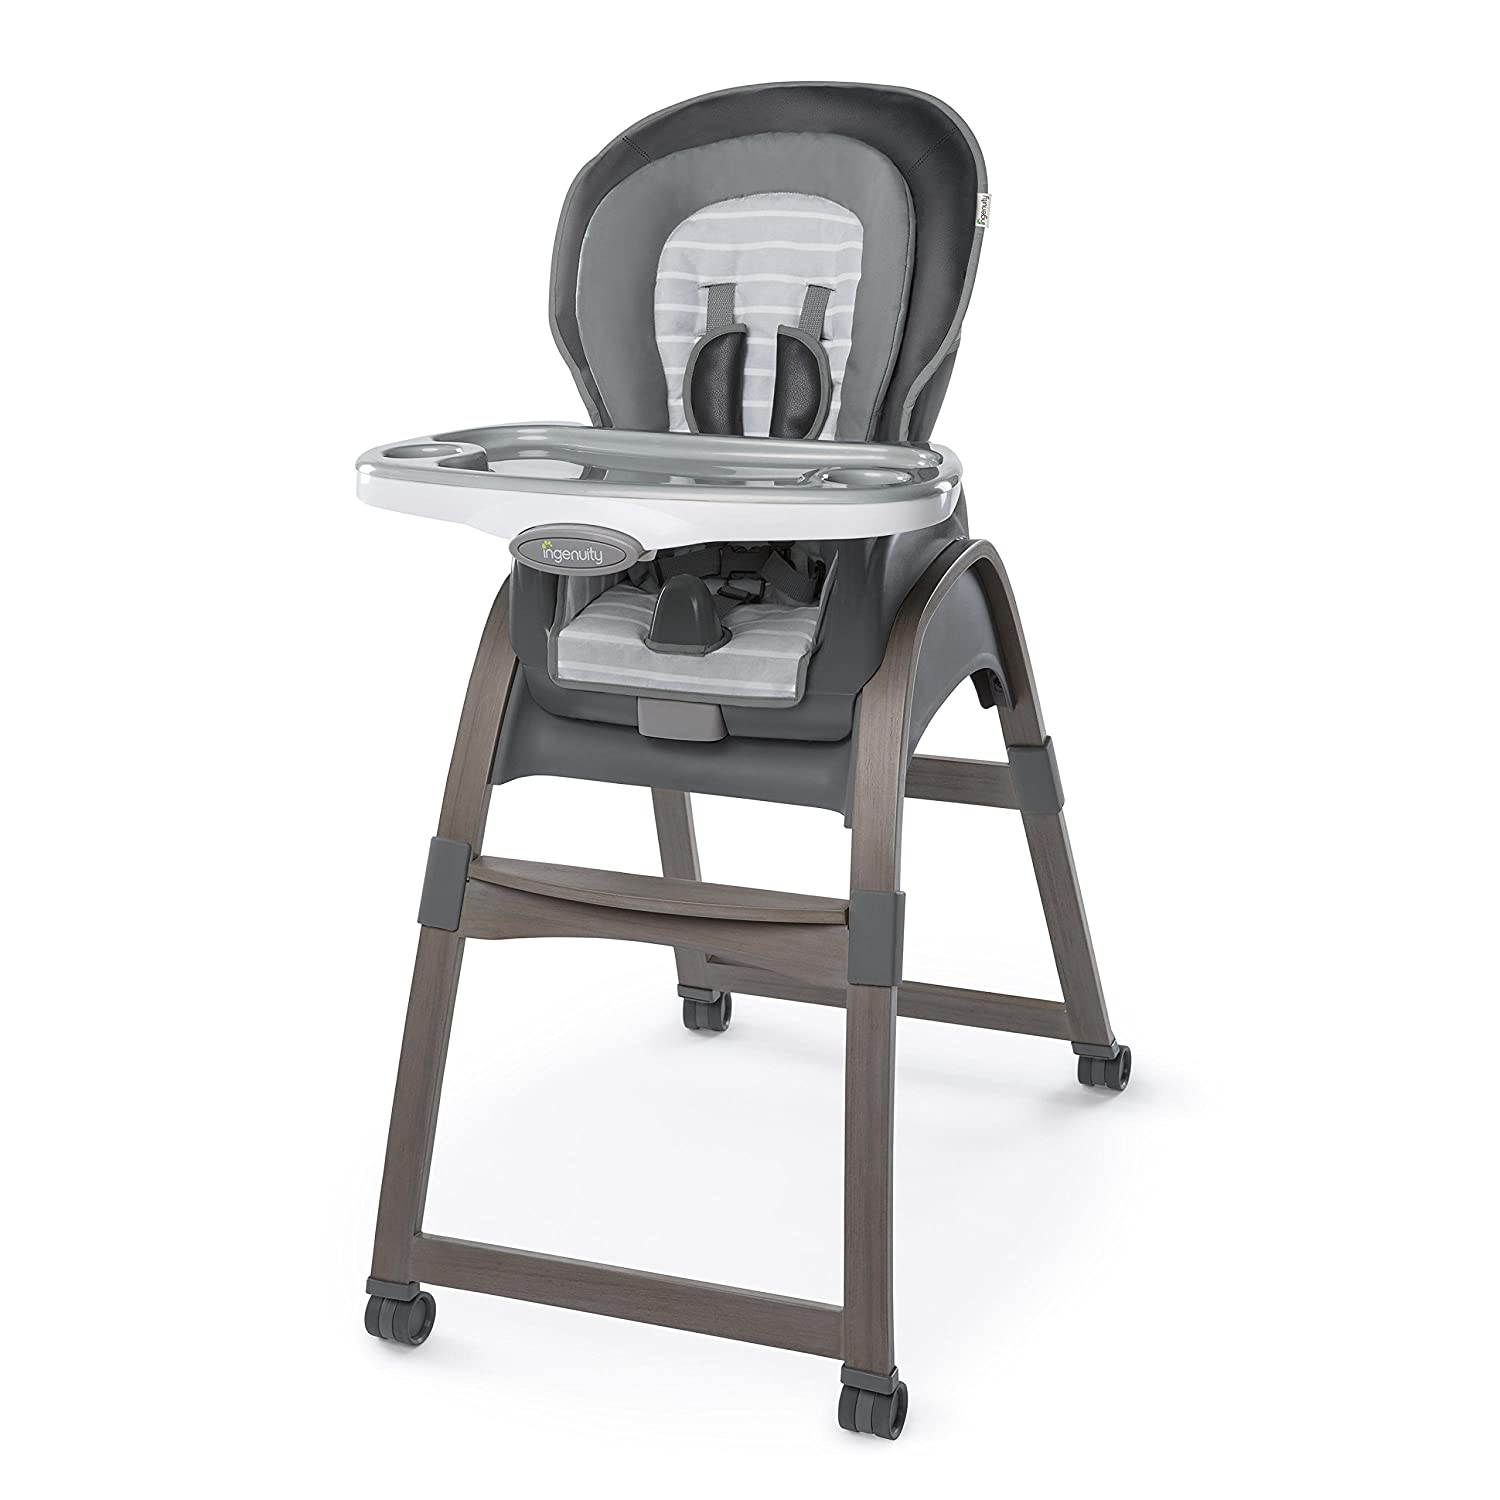 Ingenuity Trio 3-in-1 Wood High Chair - Ellison Kids II - (Carson CA)-FCA CNSNZ 10394-1